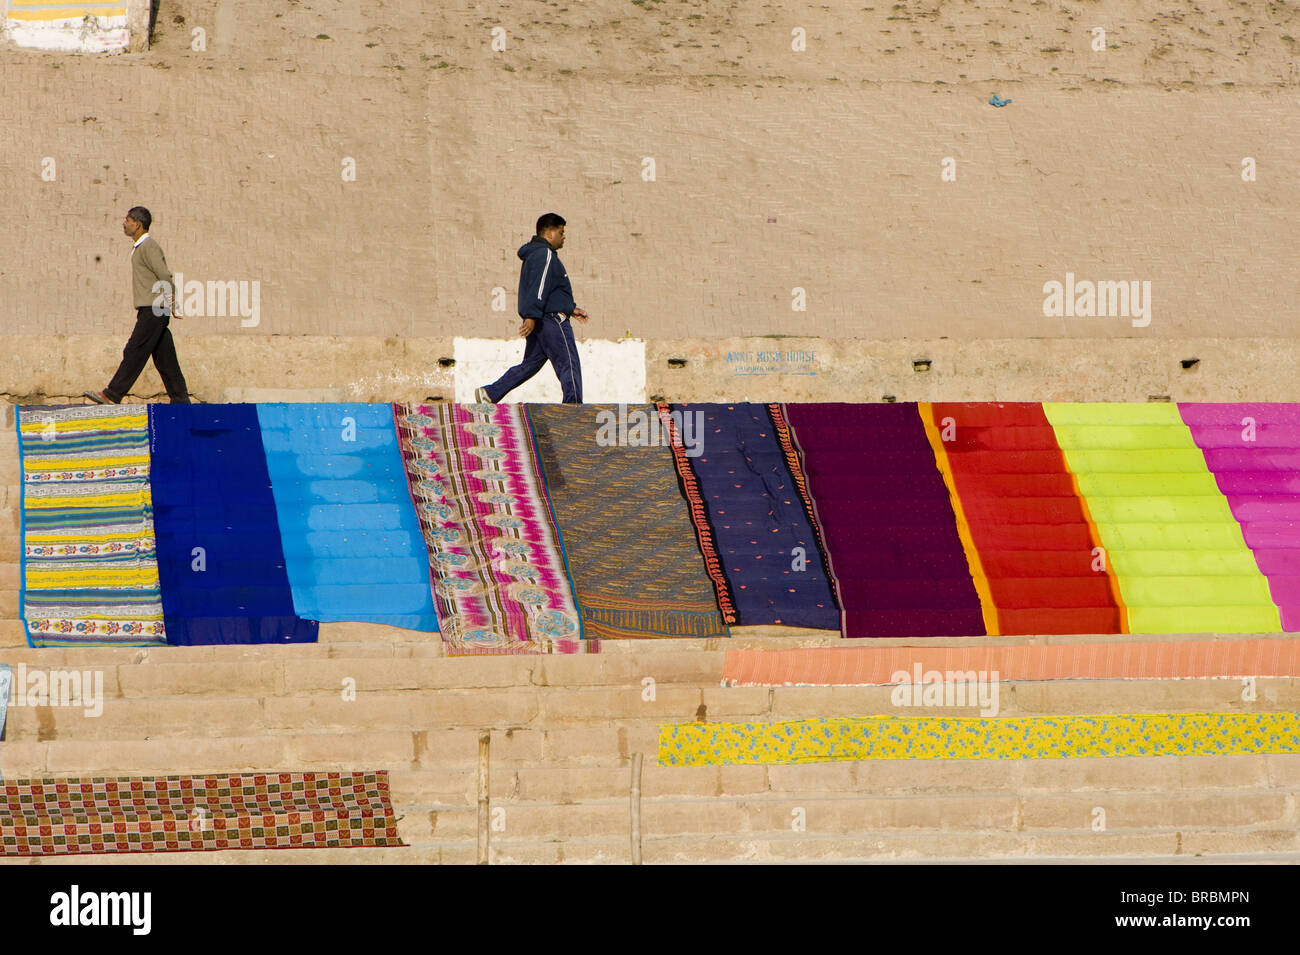 Saris drying on the ghats of Varanasi, Uttar Pradesh, India - Stock Image